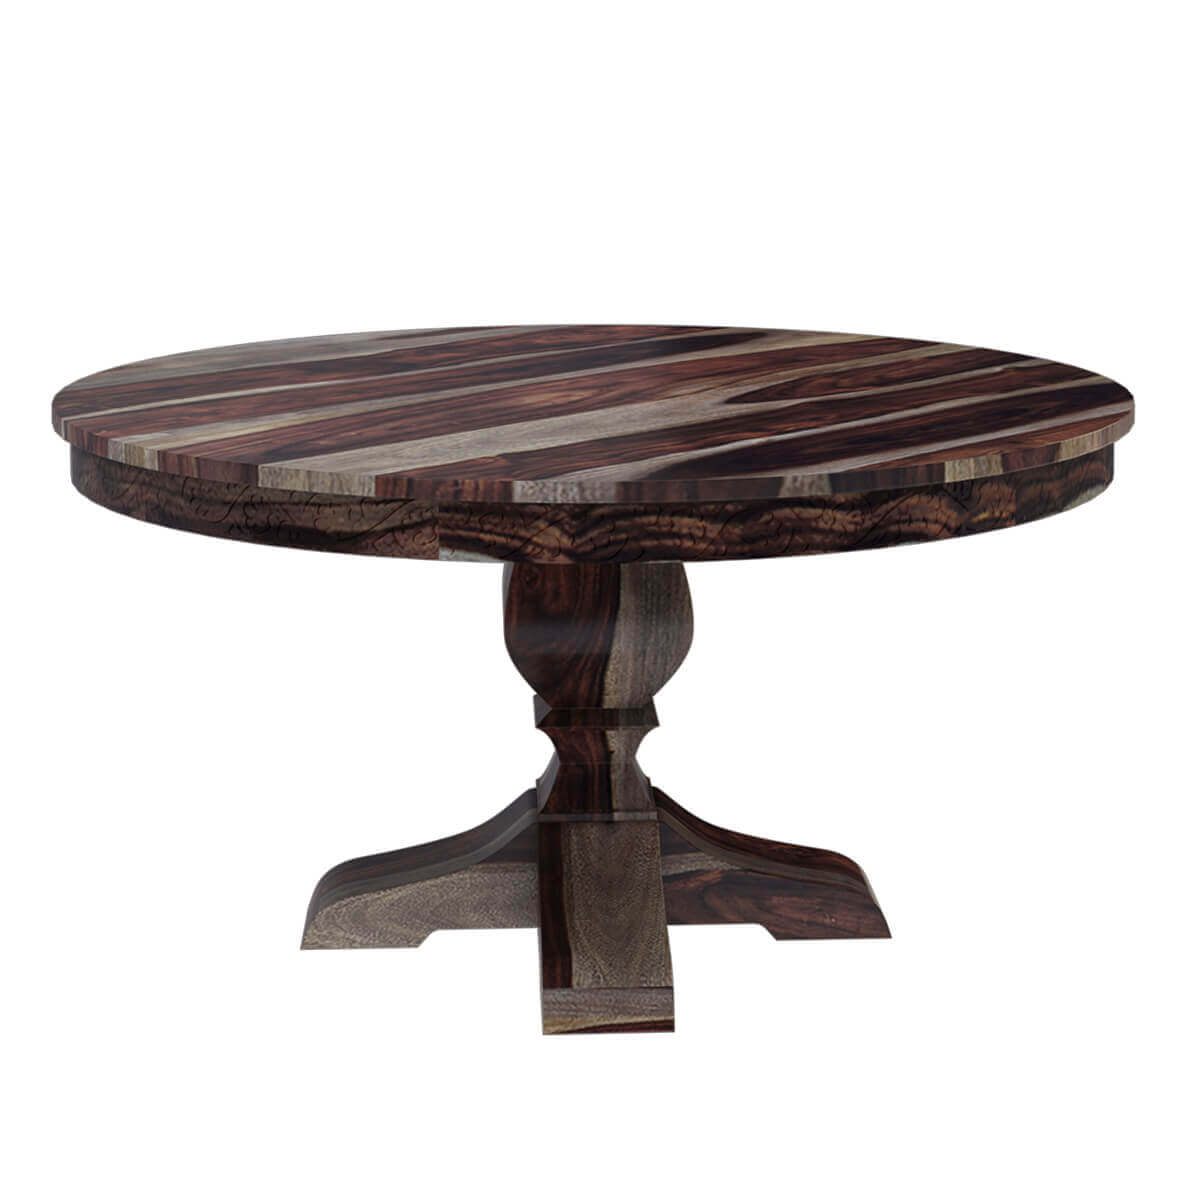 Hosford handcrafted solid wood 60 round pedestal dining table for Solid wood round dining room table